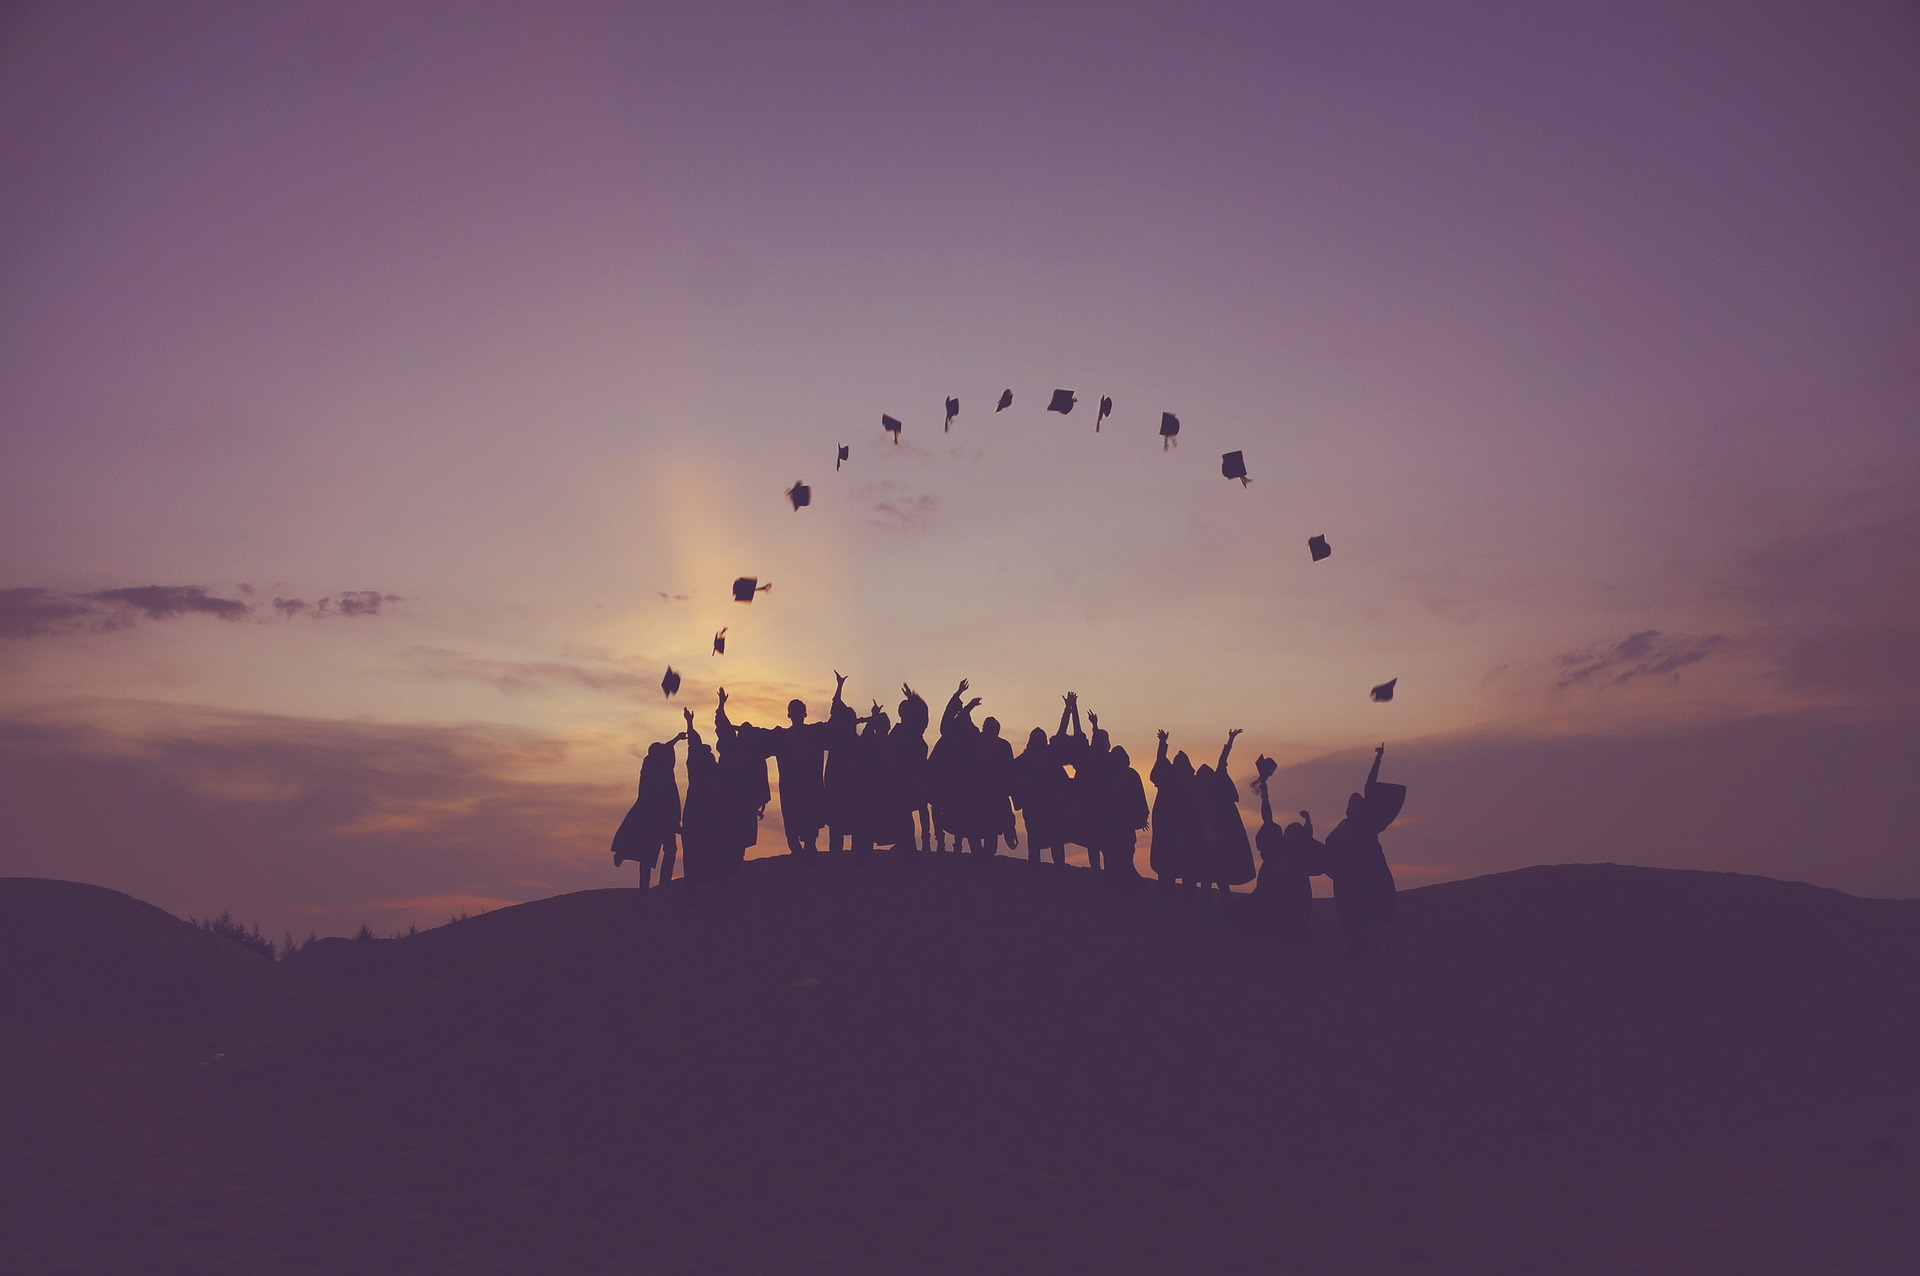 A group of students throwing their college caps in the air.